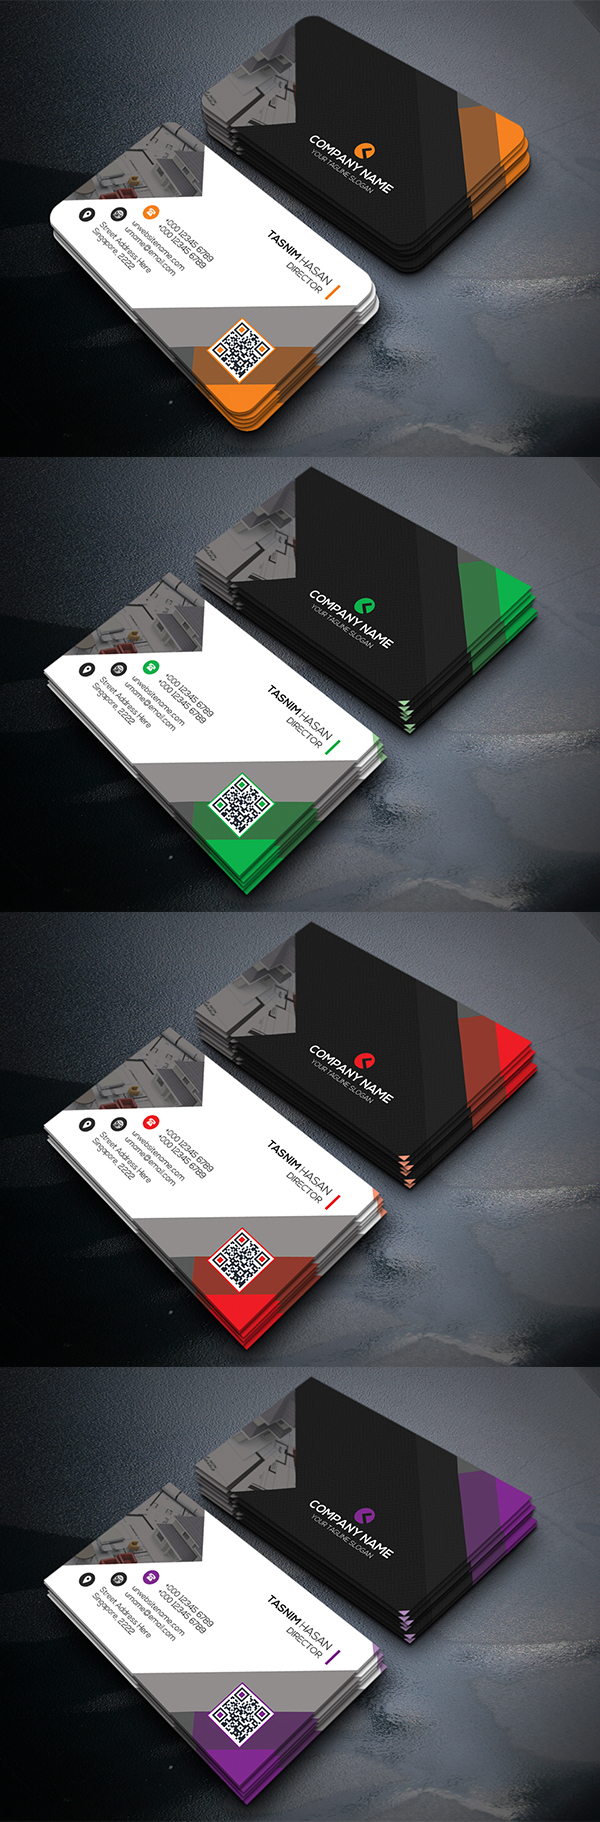 20 Business Card Design